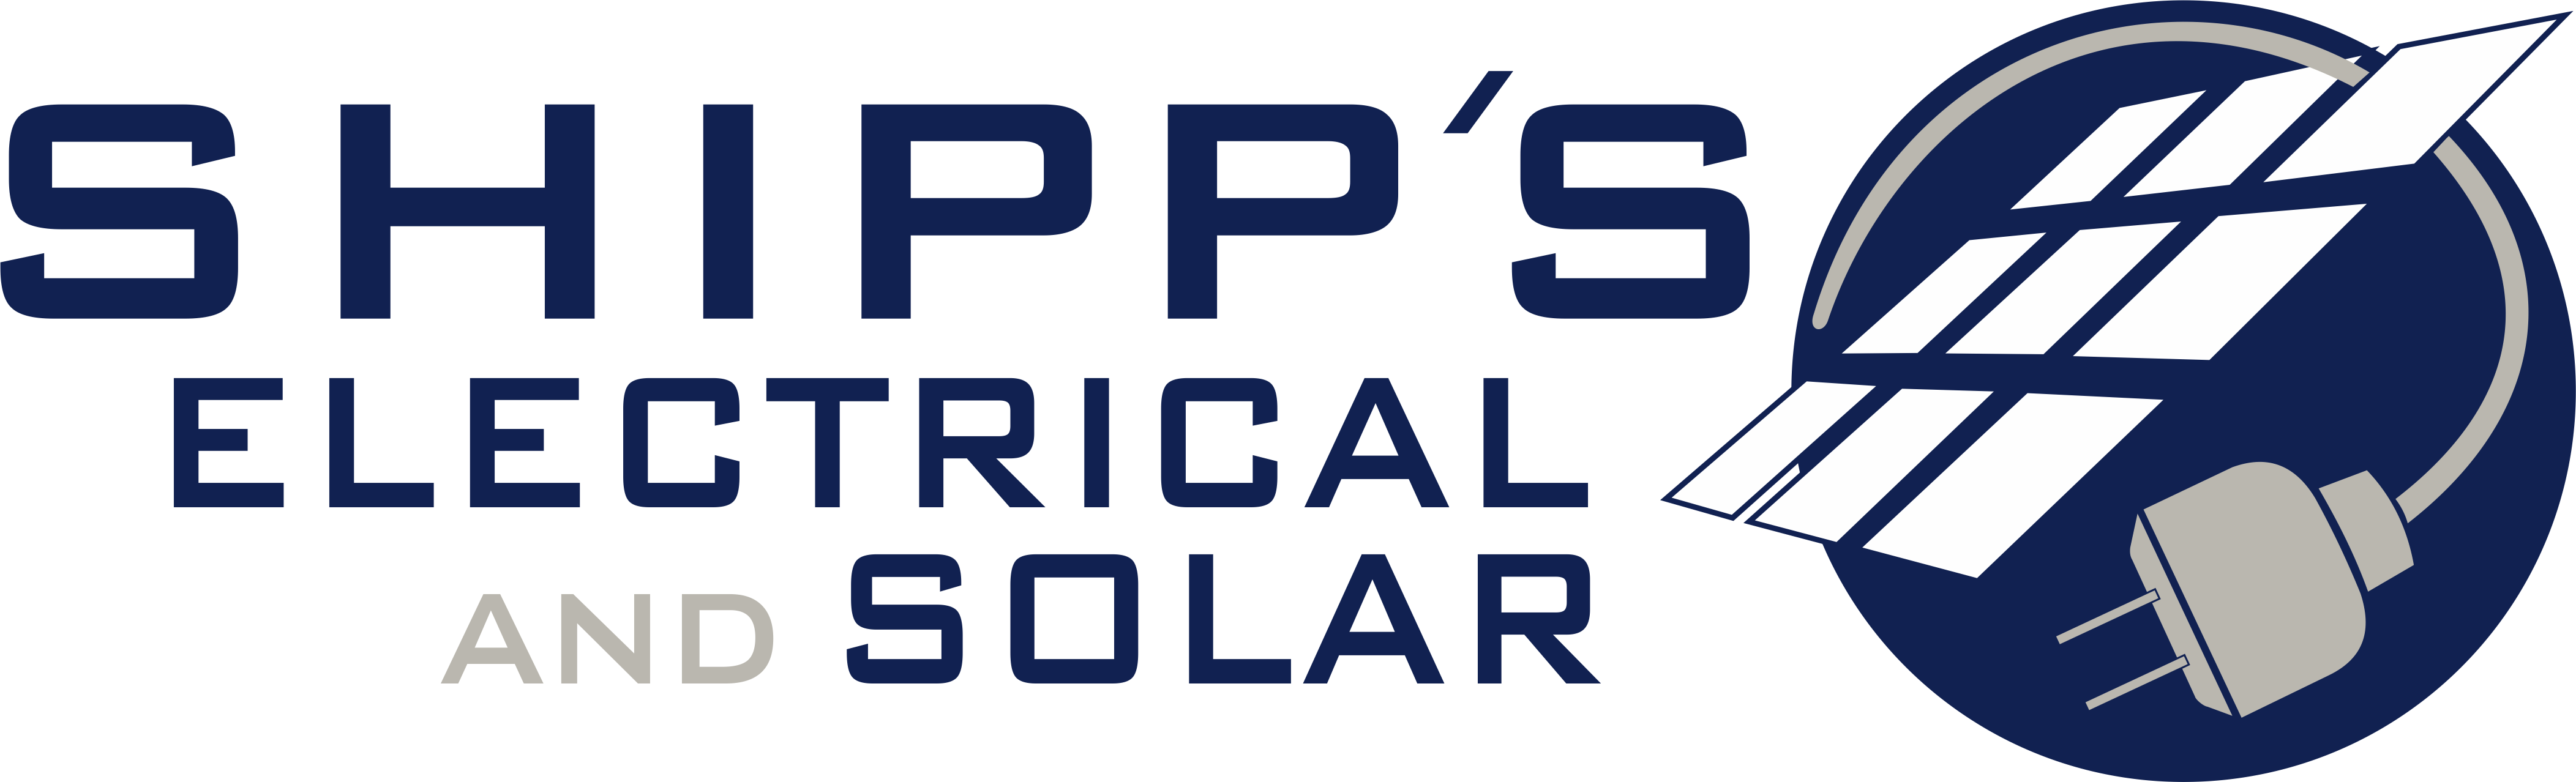 Shipp's Electrical and Solar